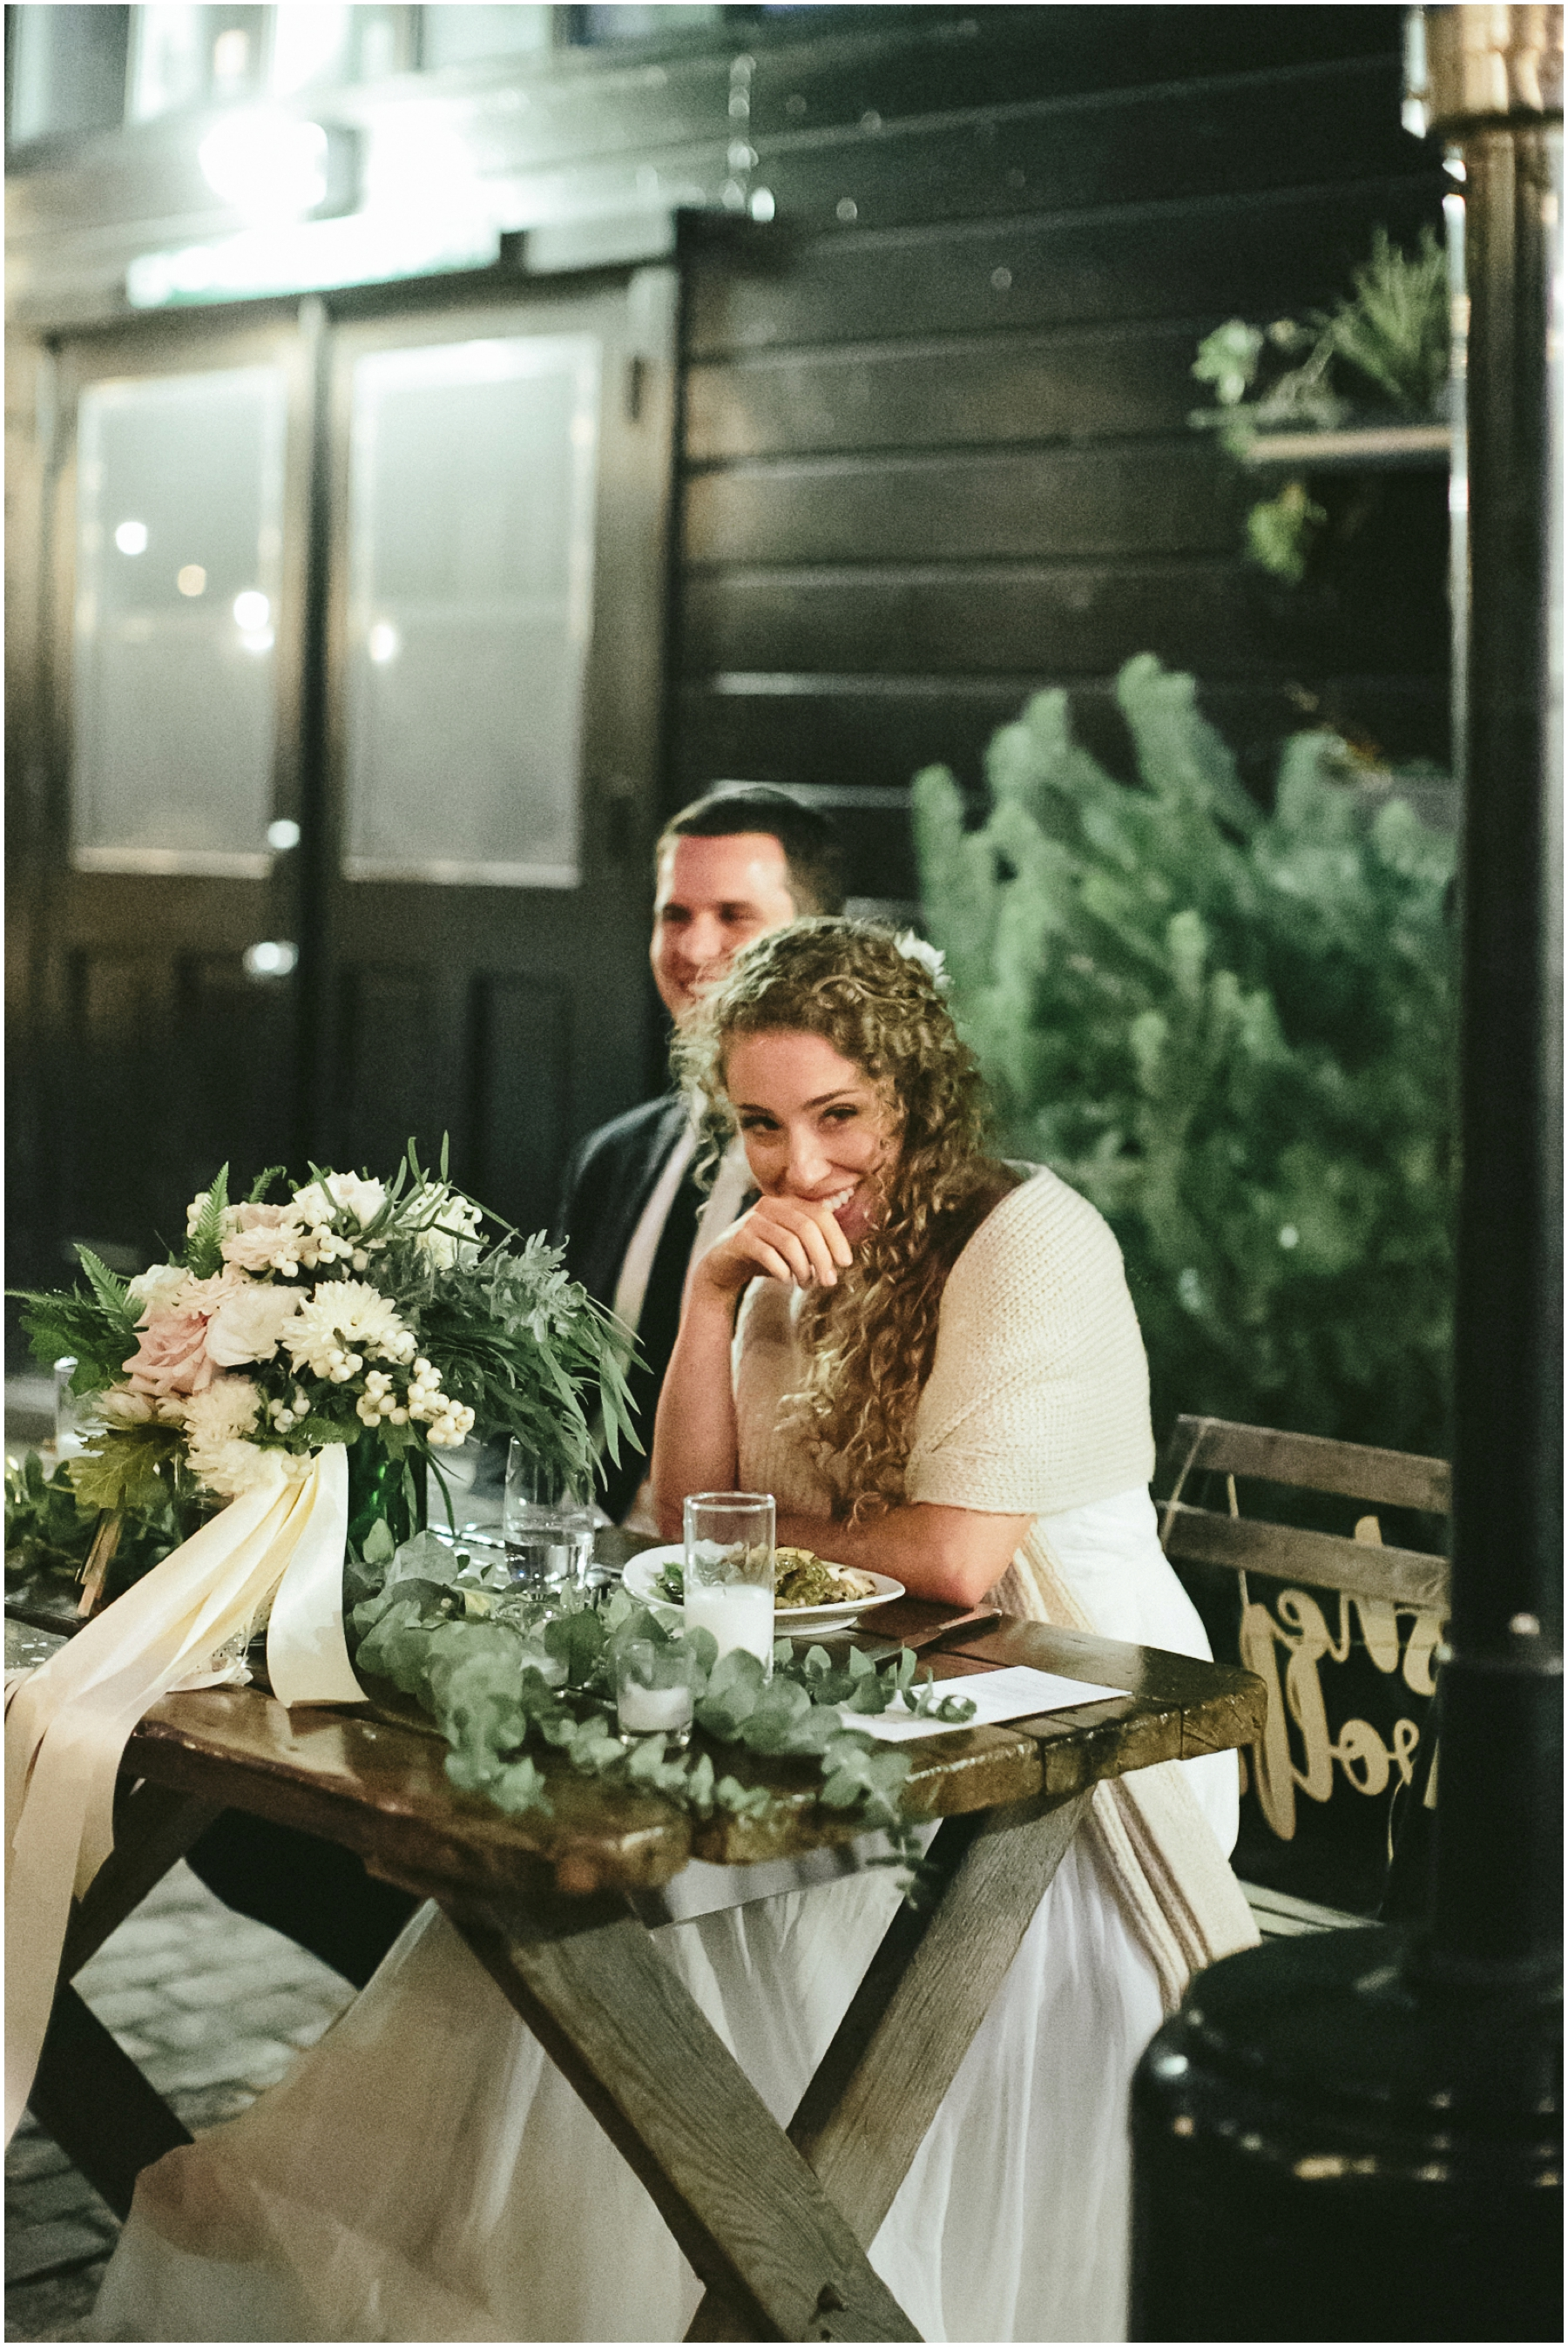 Emily+Paul-WEDDING_KellyBoitanoPhotography_0141